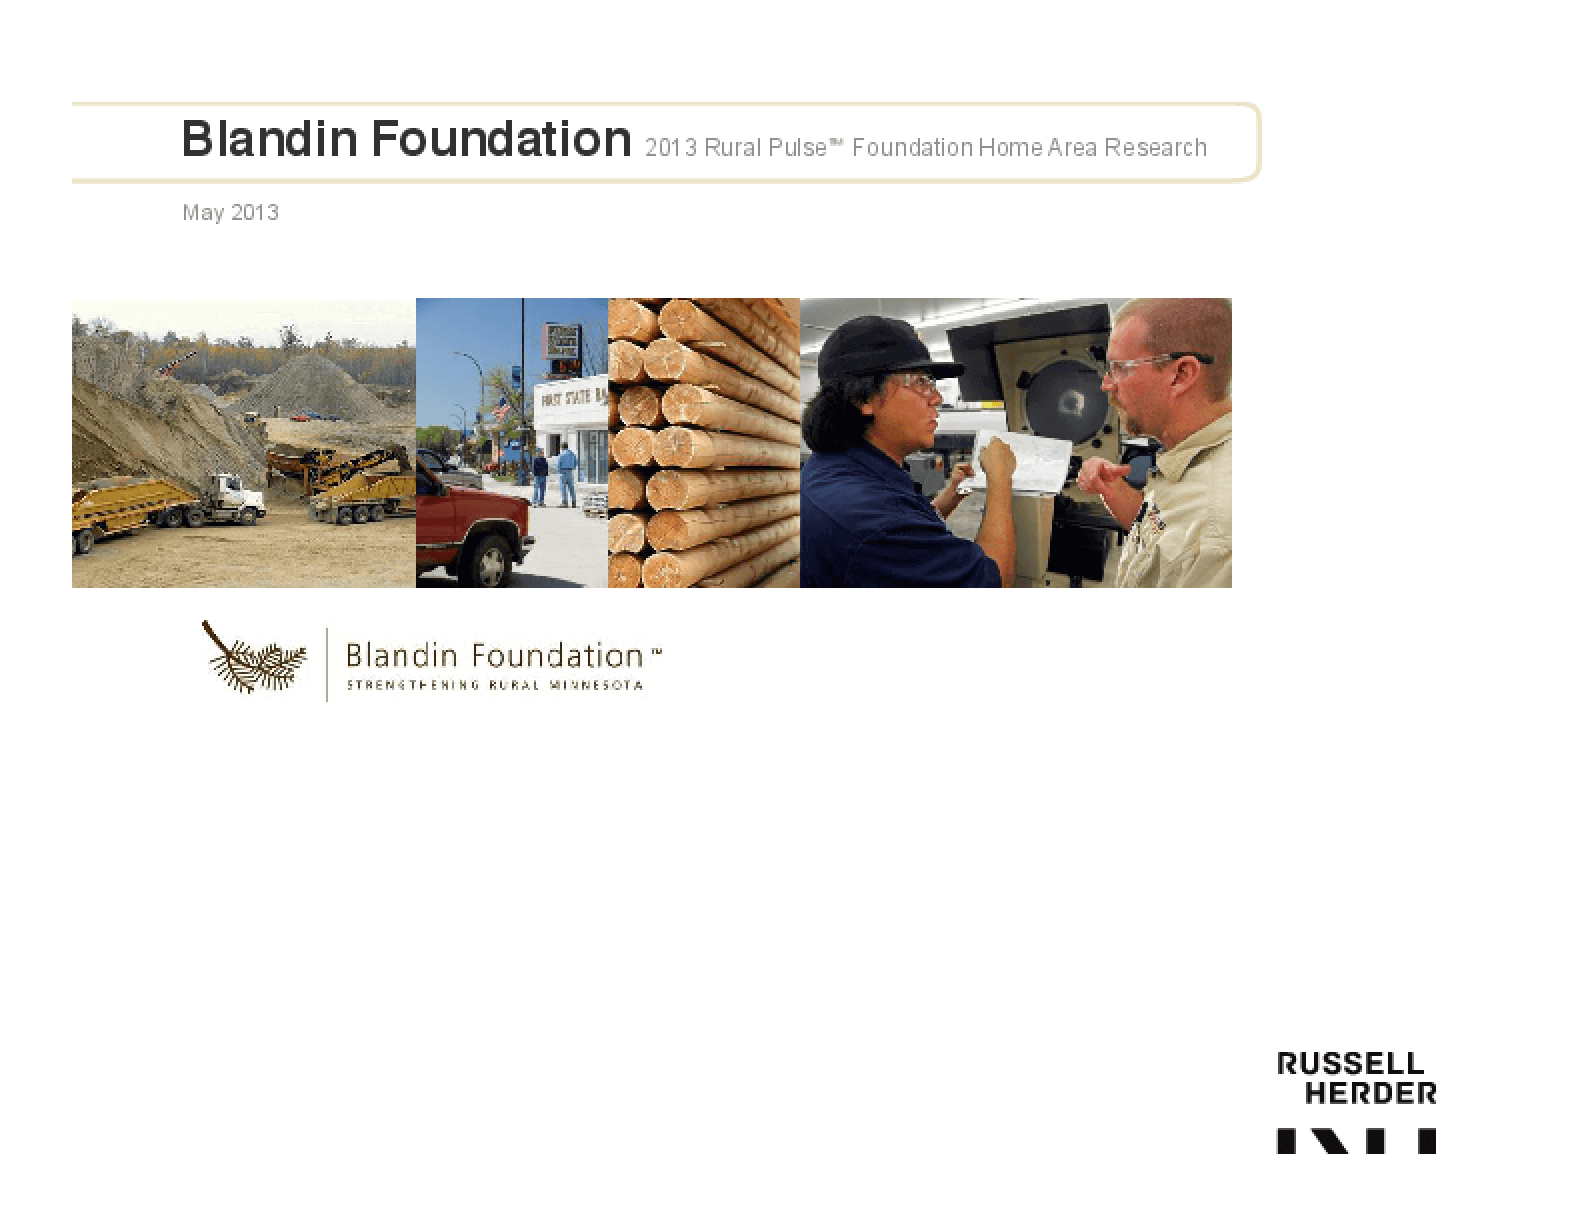 2013 Rural Pulse: Foundation Home Area Research